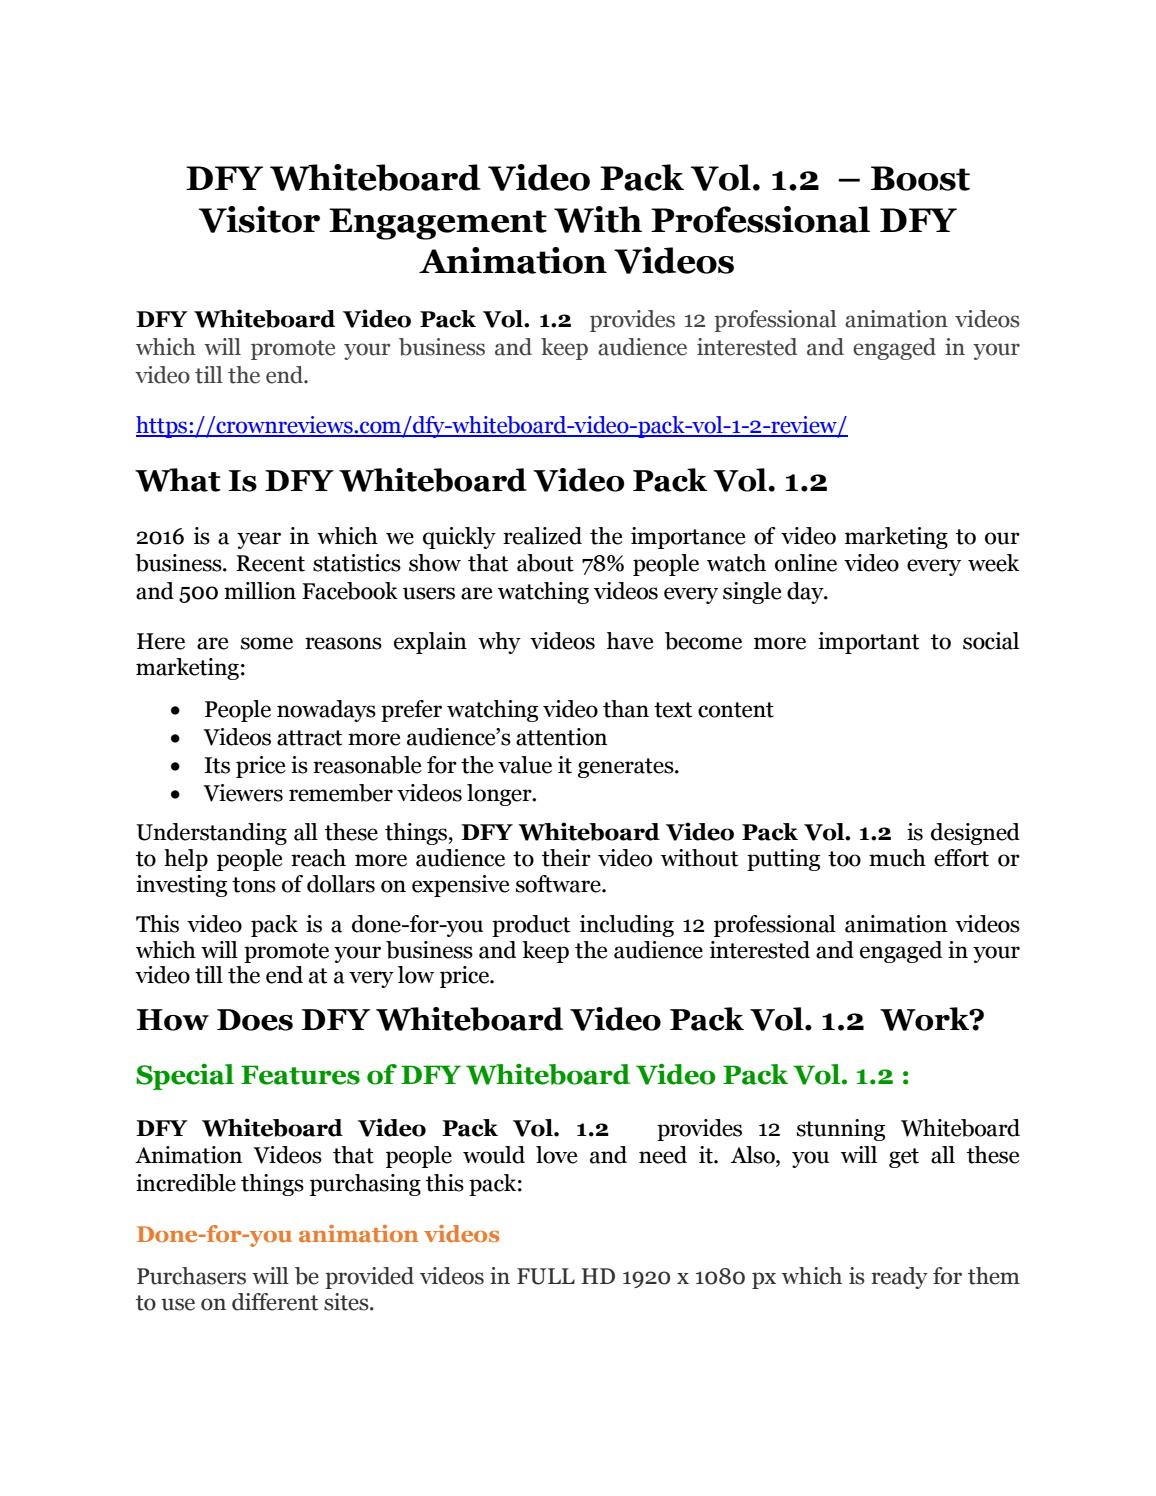 Dfy whiteboard video pack vol 12 review and giant 21600 bonuses dfy whiteboard video pack vol 12 review and giant 21600 bonuses by huzicili issuu ccuart Image collections